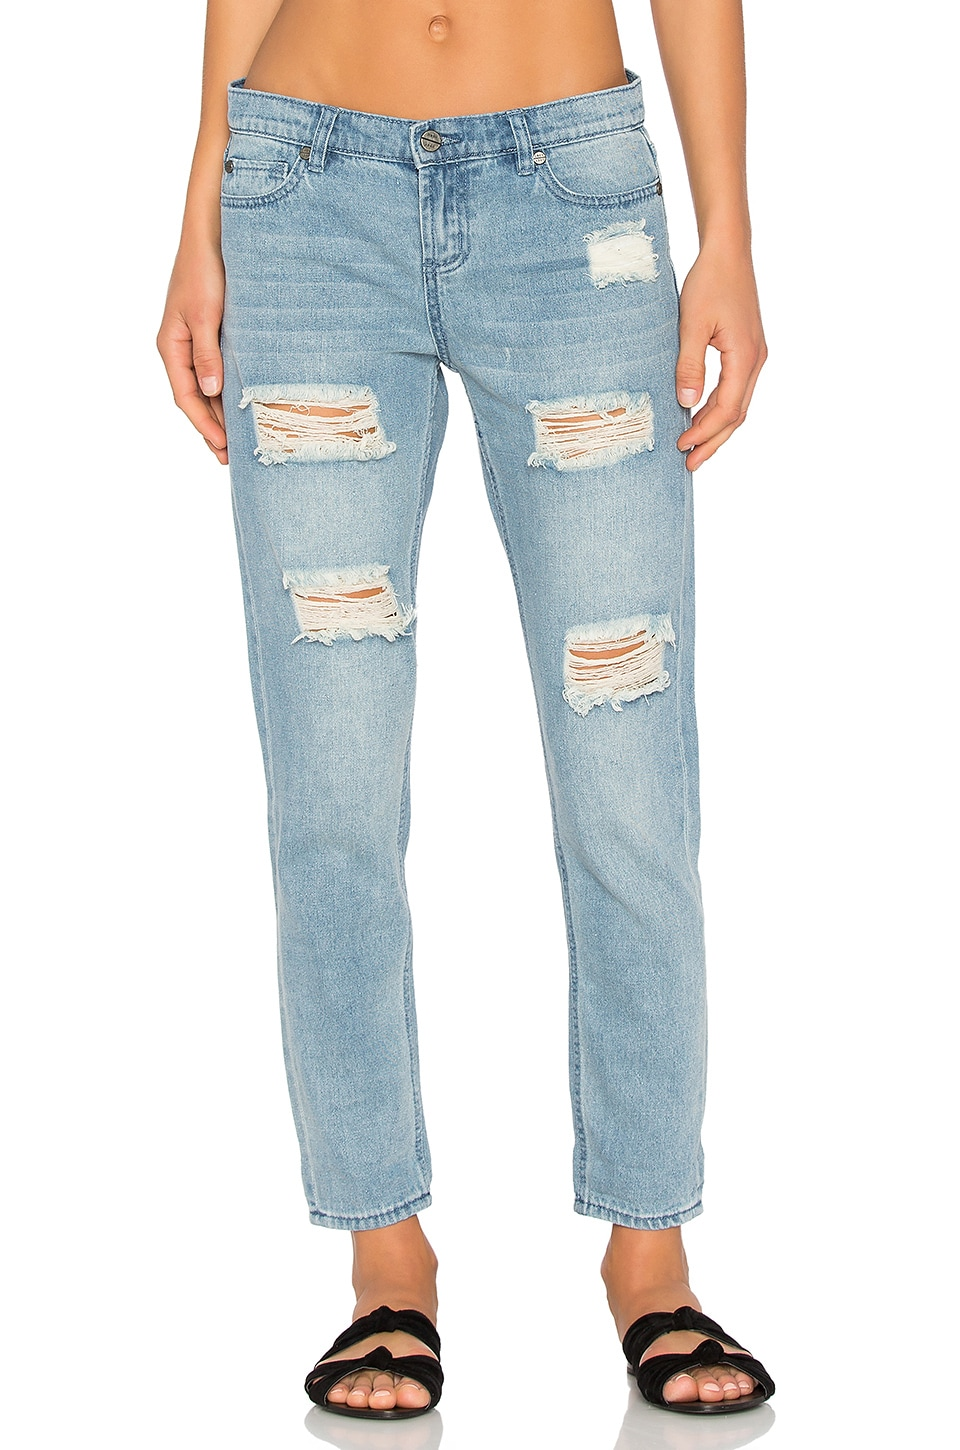 The Nemesis II Jeans by Obey